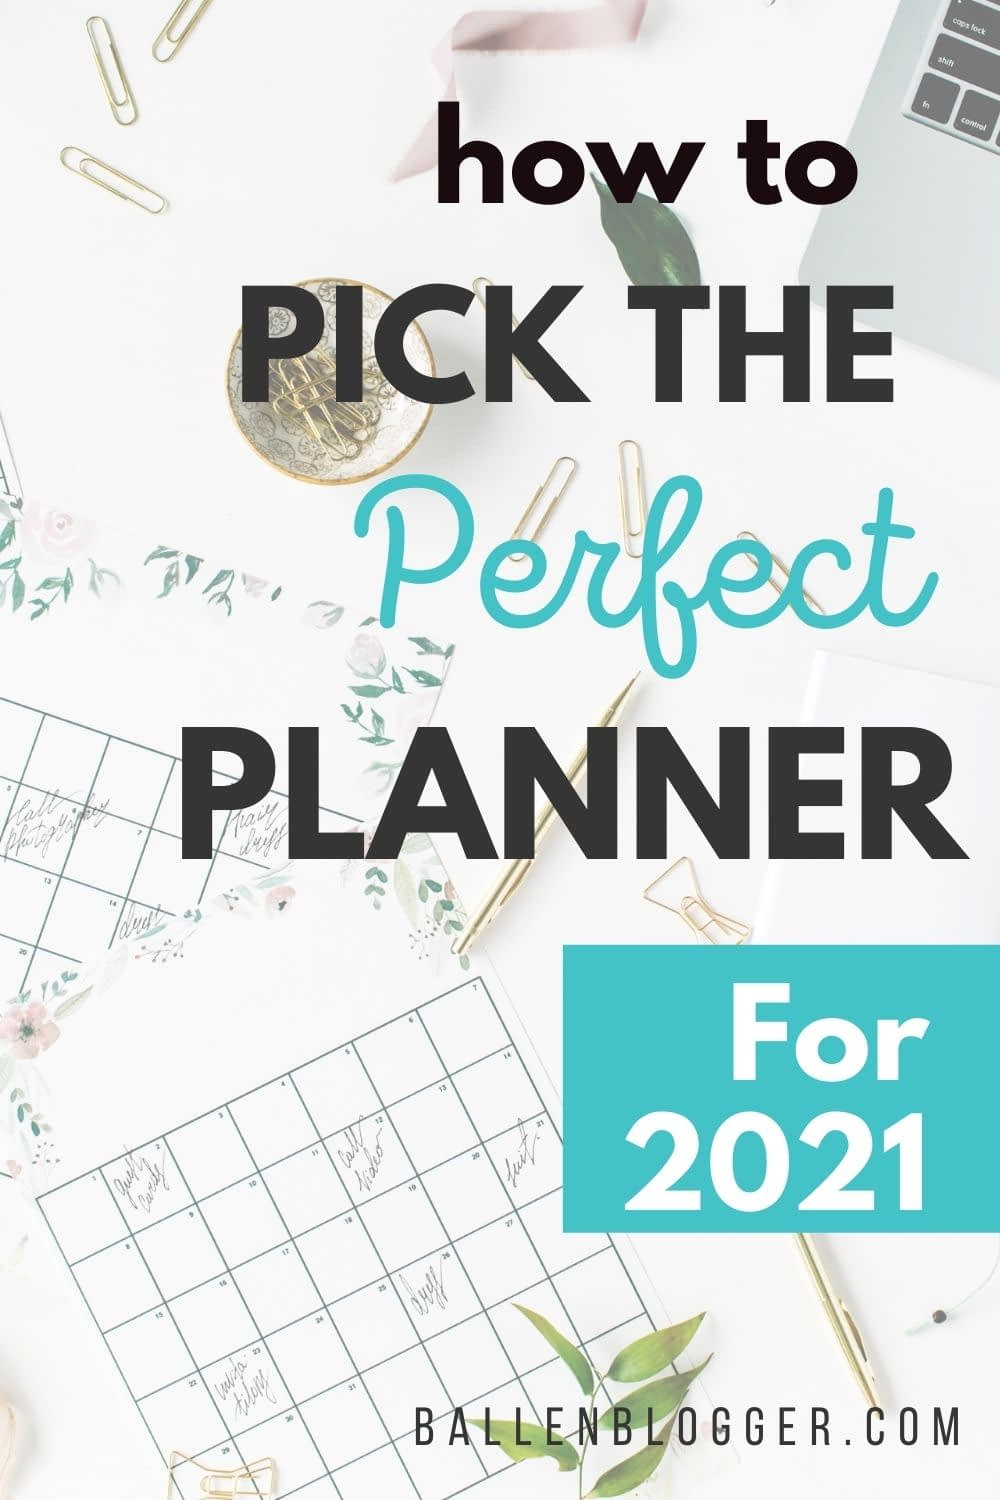 Take a look at some popular planner ideas to help find the best planner for 2021.